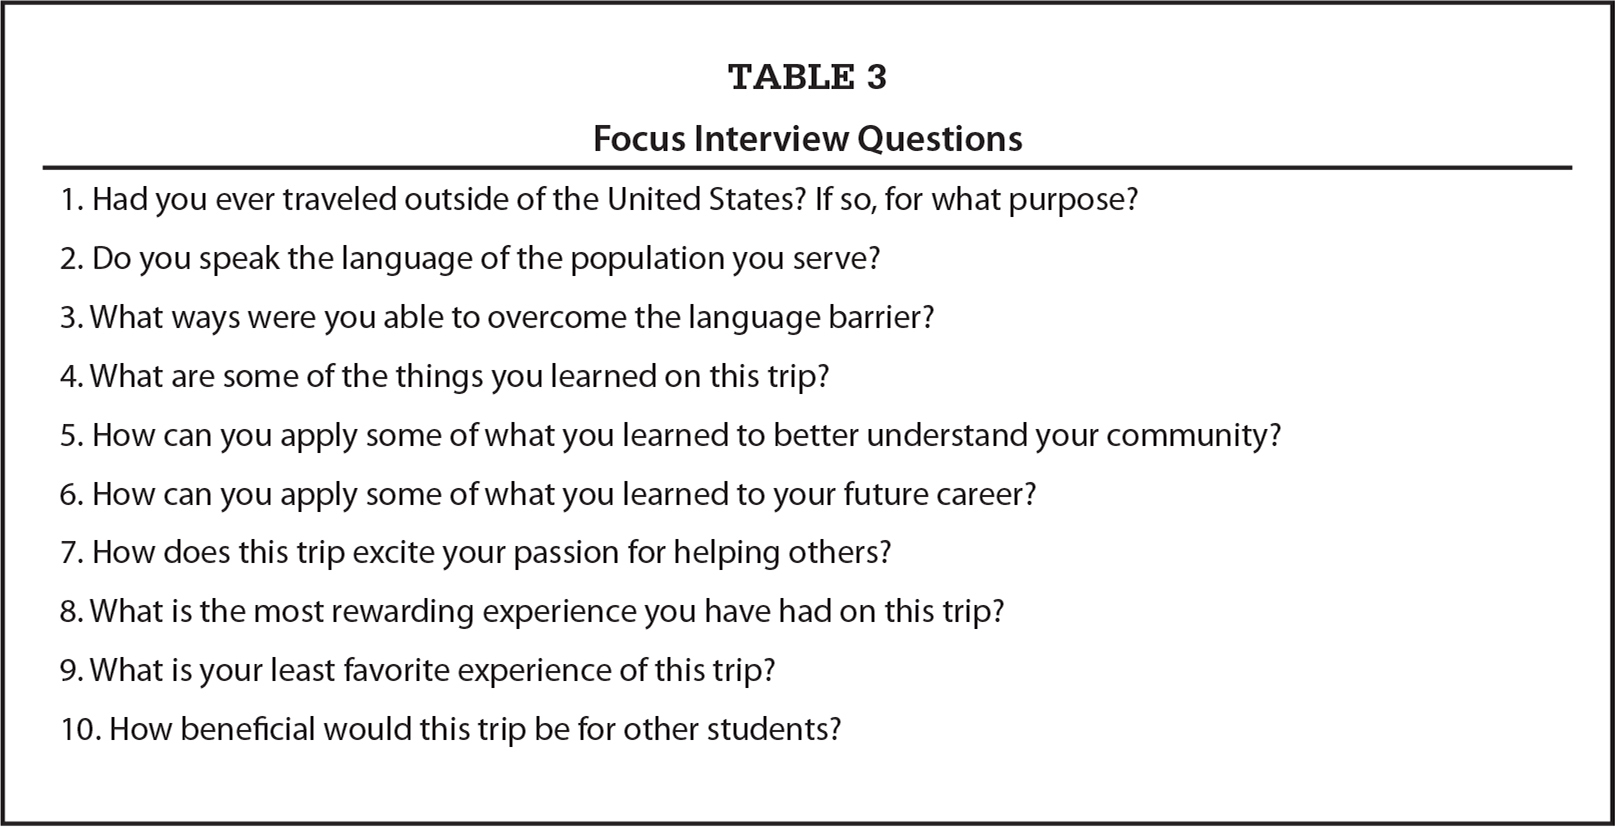 Focus Interview Questions